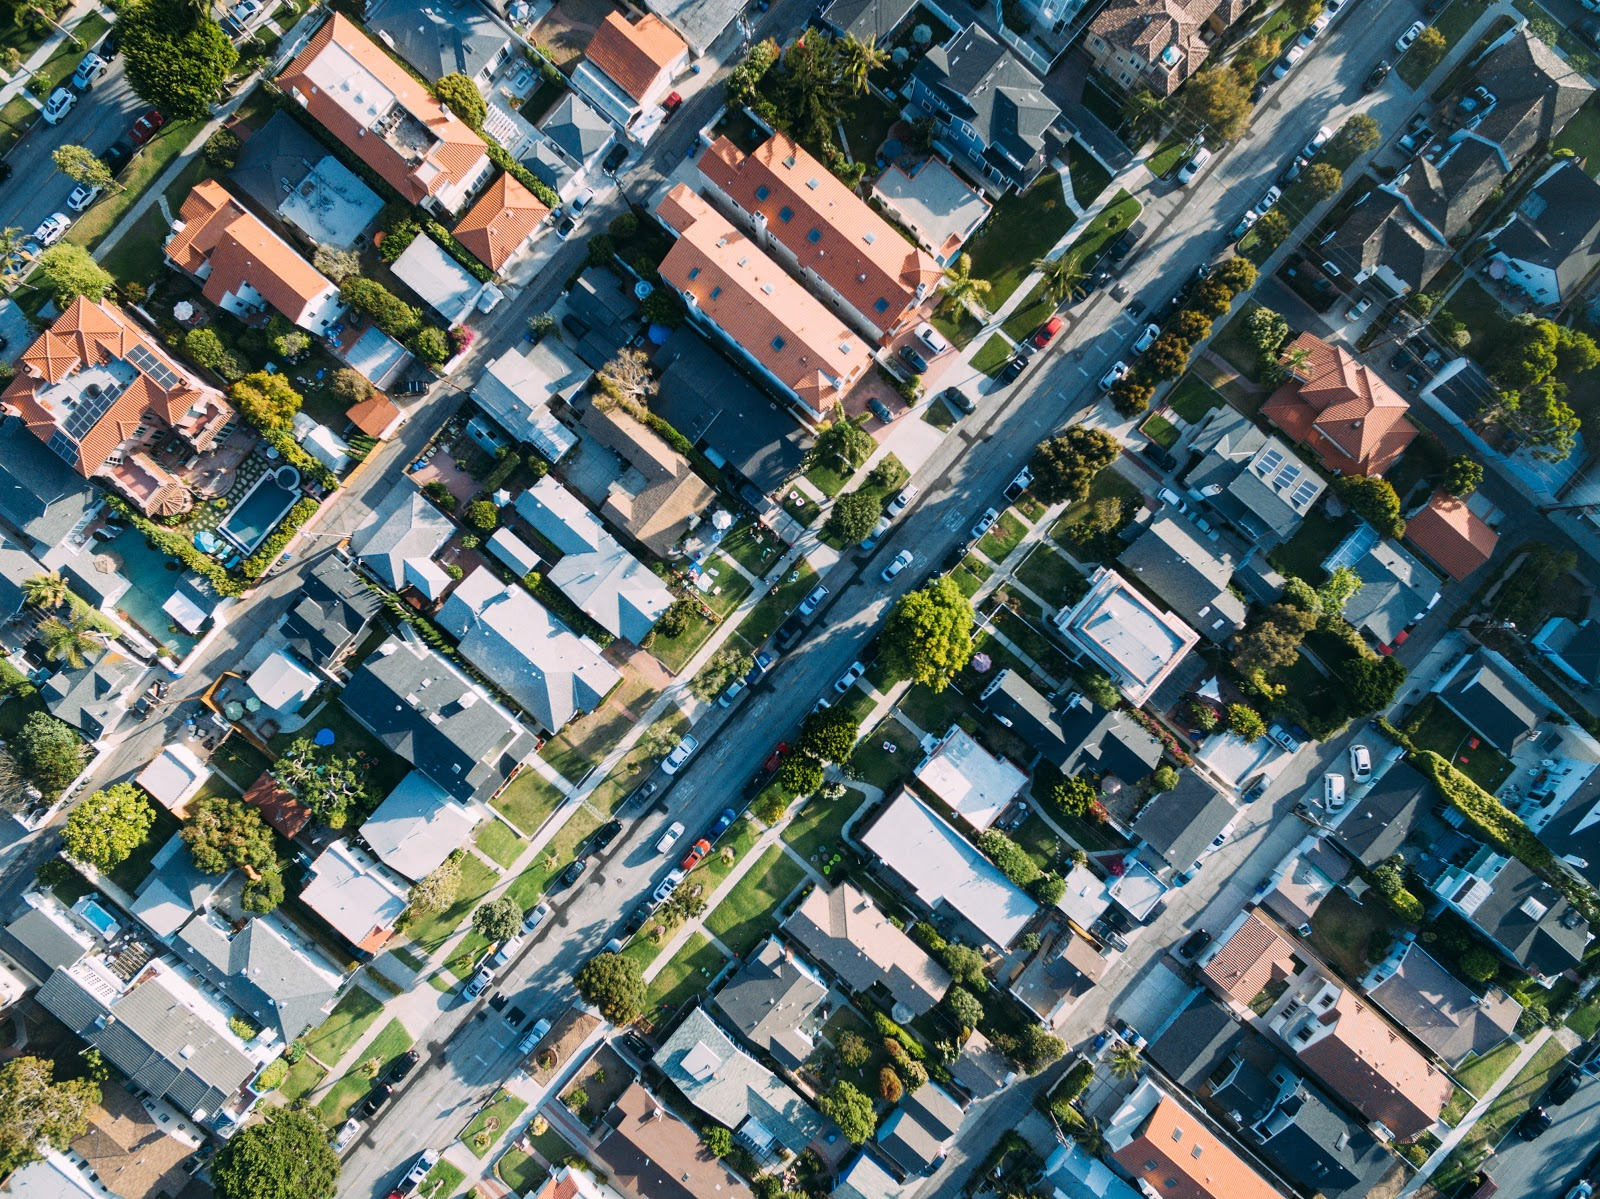 an aerial view of a residential area